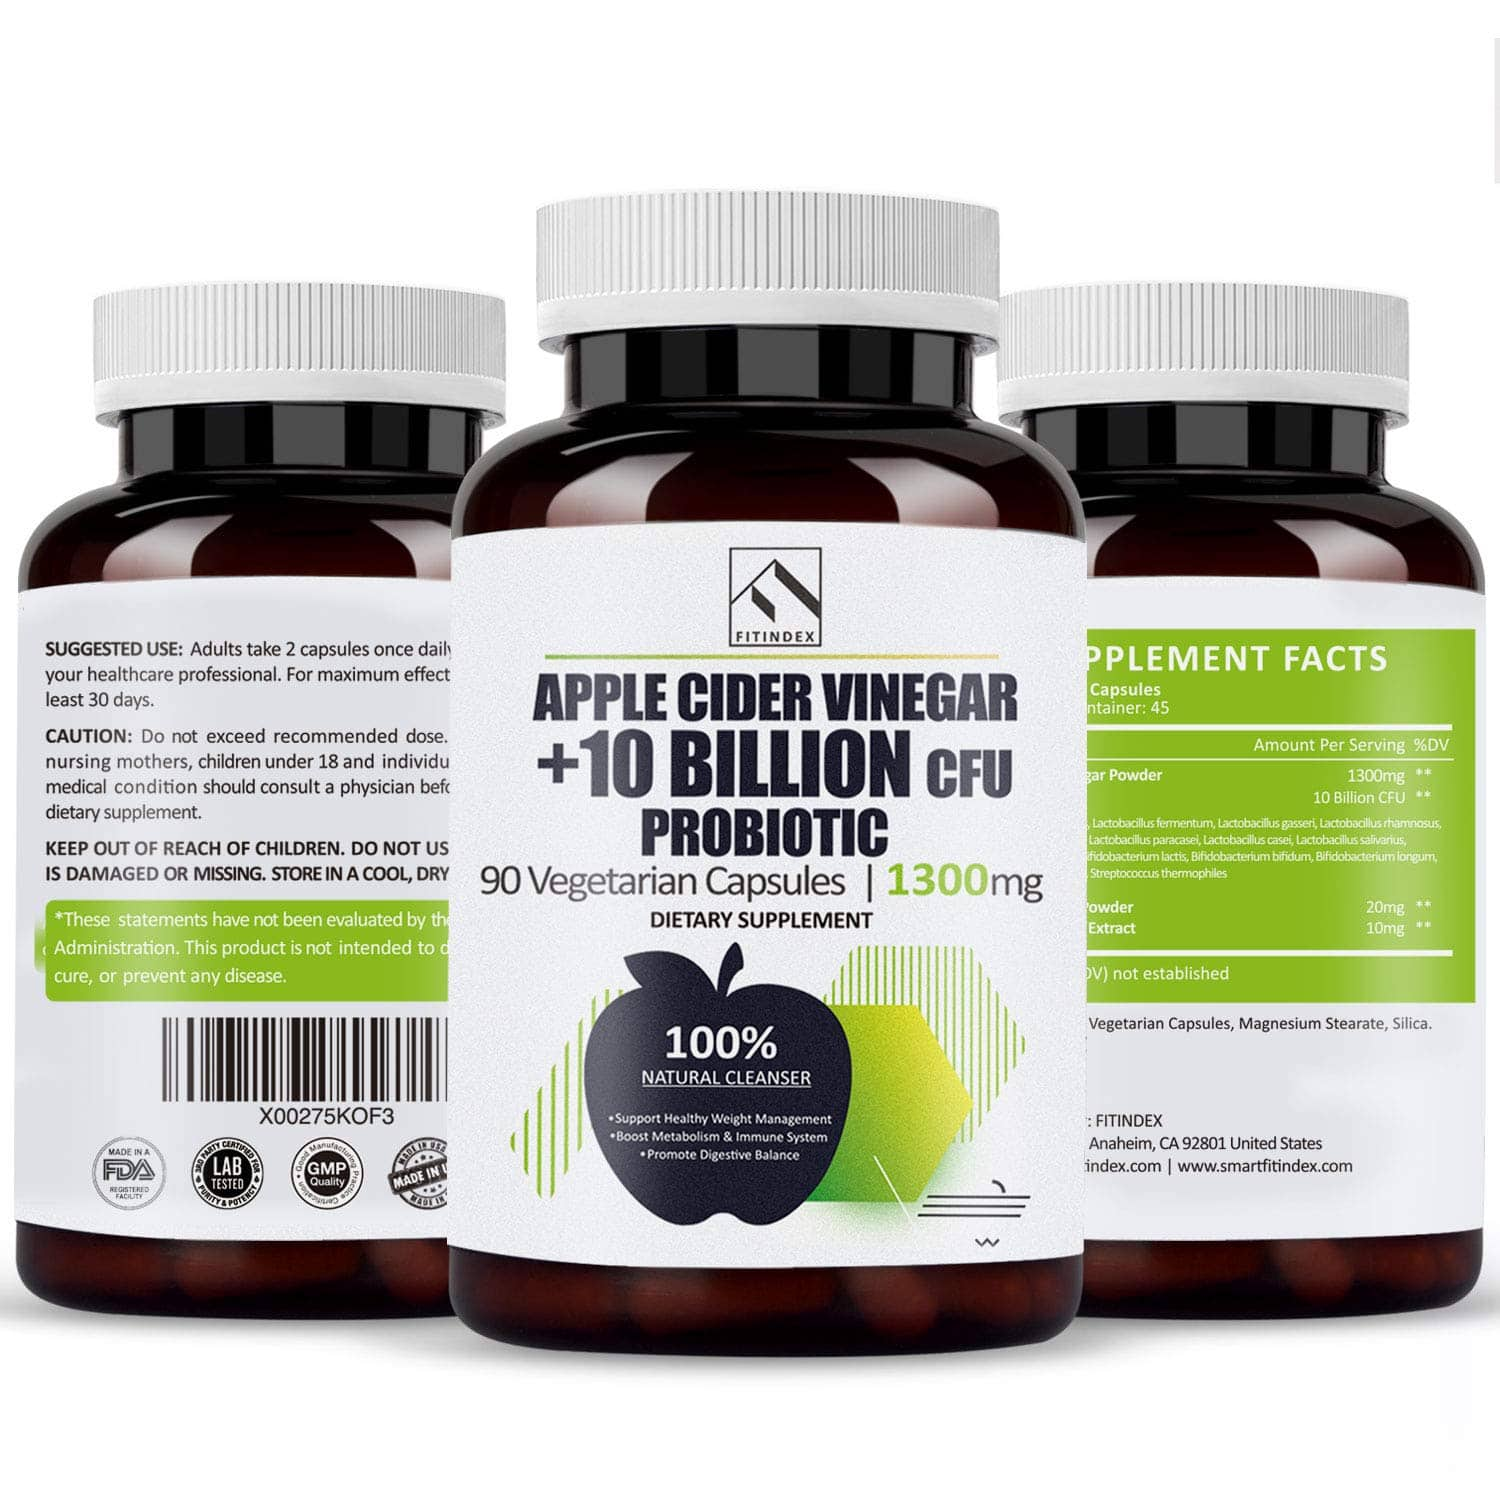 Organic Natural Raw Apple Cider Vinegar Capsules 90 with Probiotics 10 Billion CFU Detox Cleanse for Women Men $9.99 ~10.99 ac